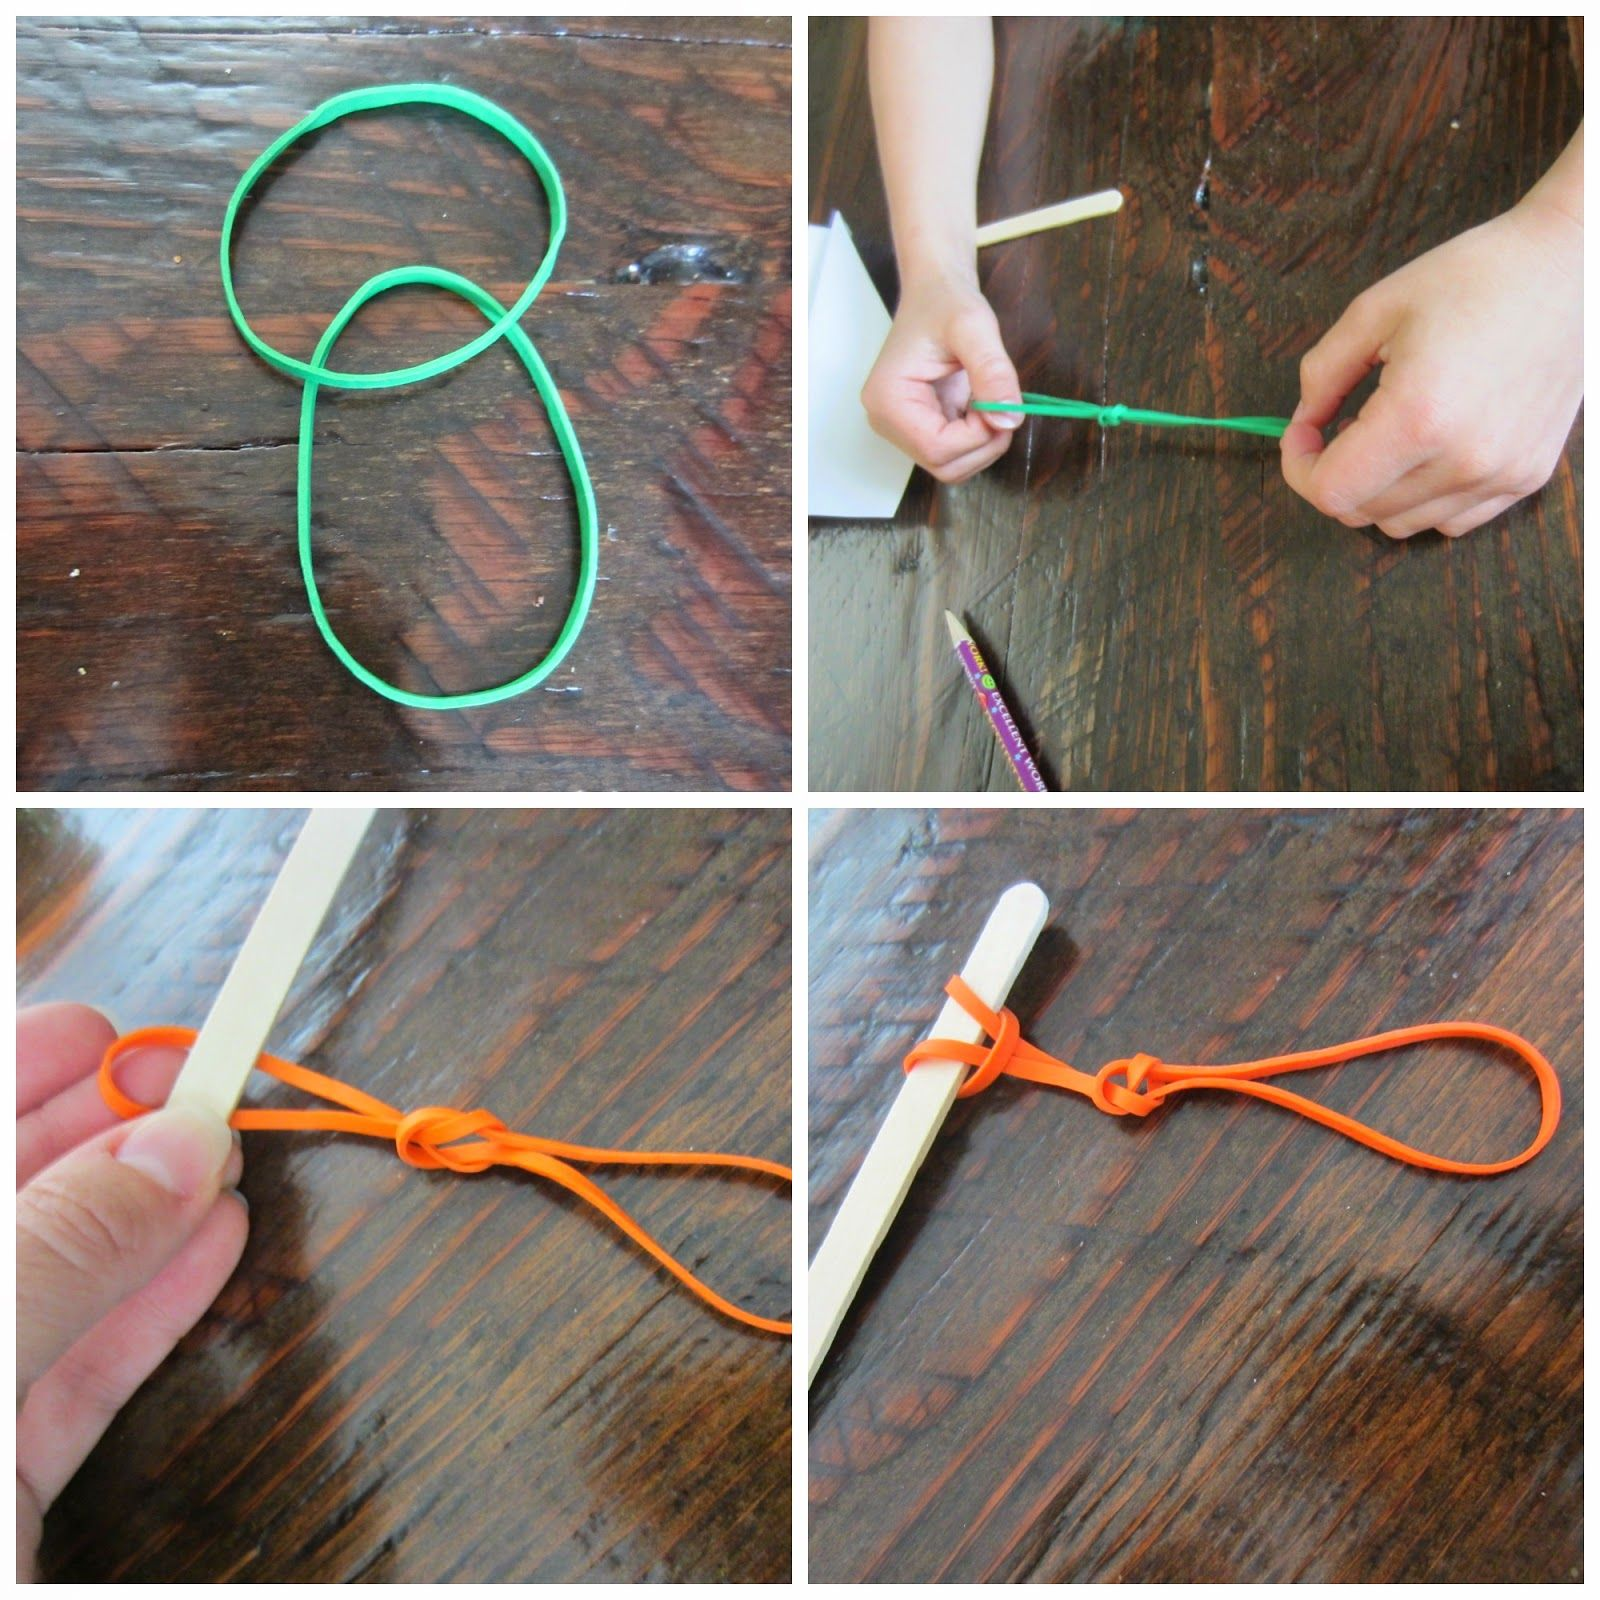 Relentlessly Fun Deceptively Educational How To Make A